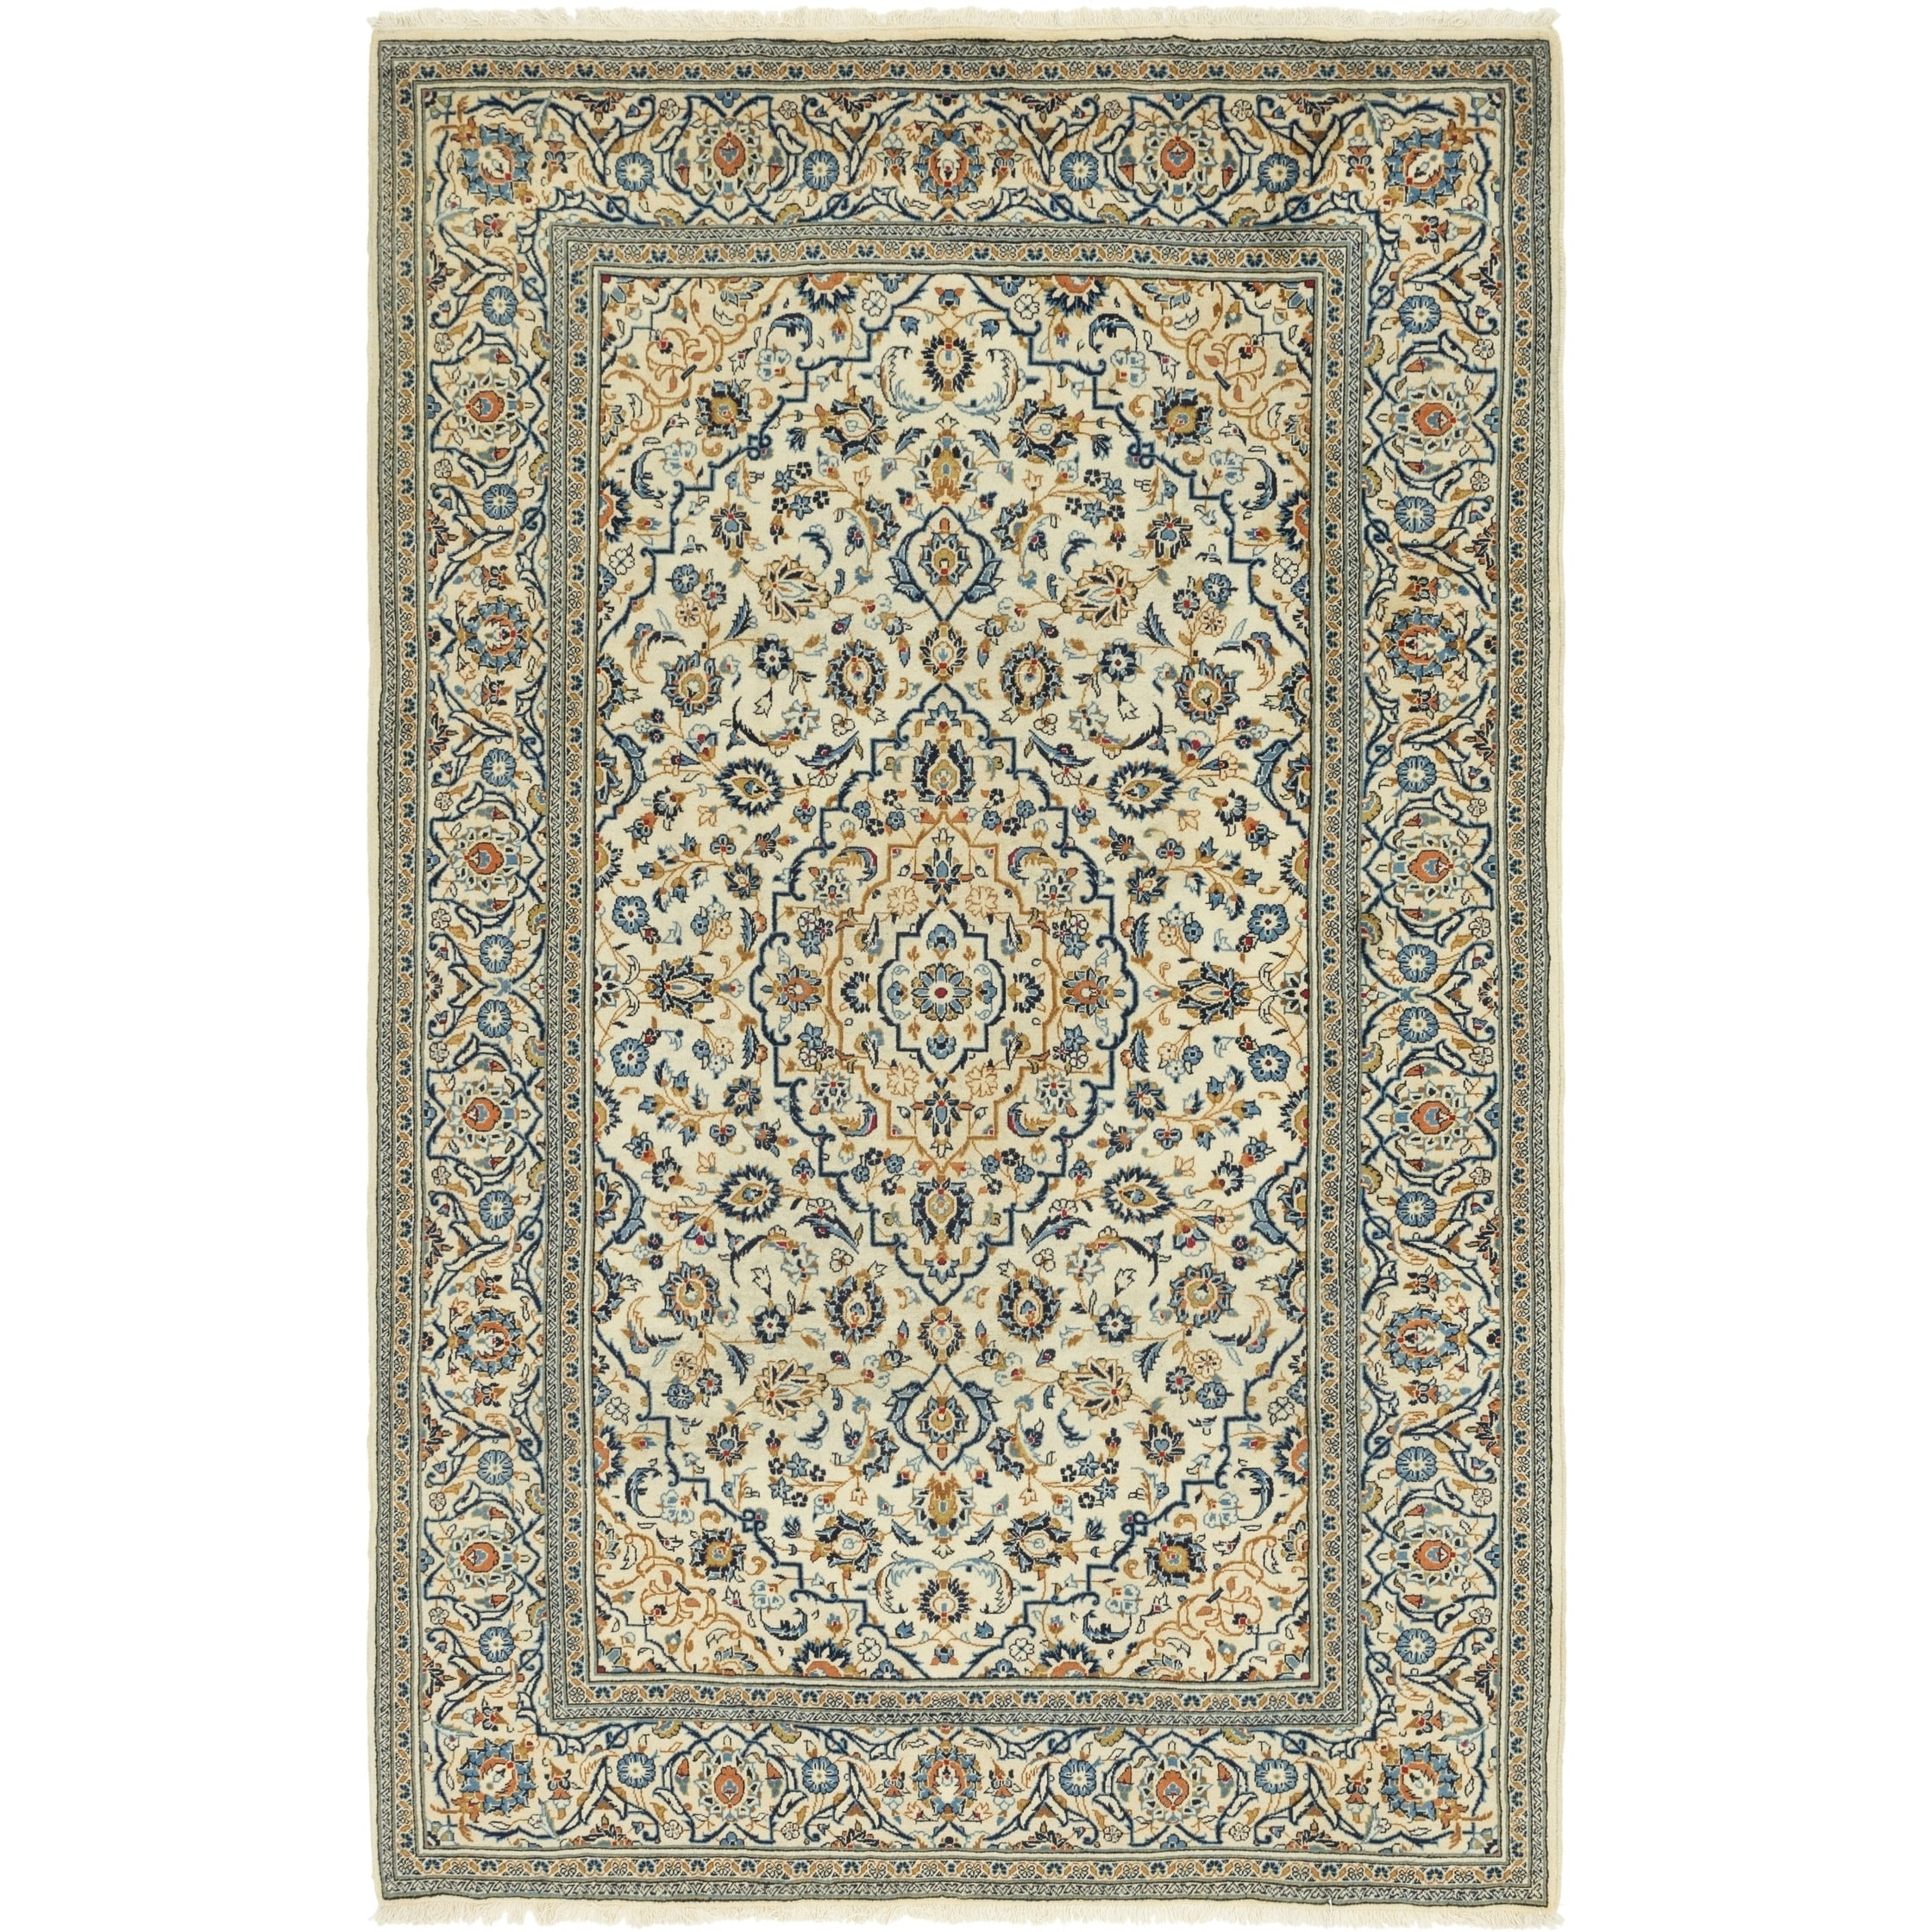 Hand Knotted Kashan Wool Area Rug - 6 7 x 10 4 (Ivory - 6 7 x 10 4)